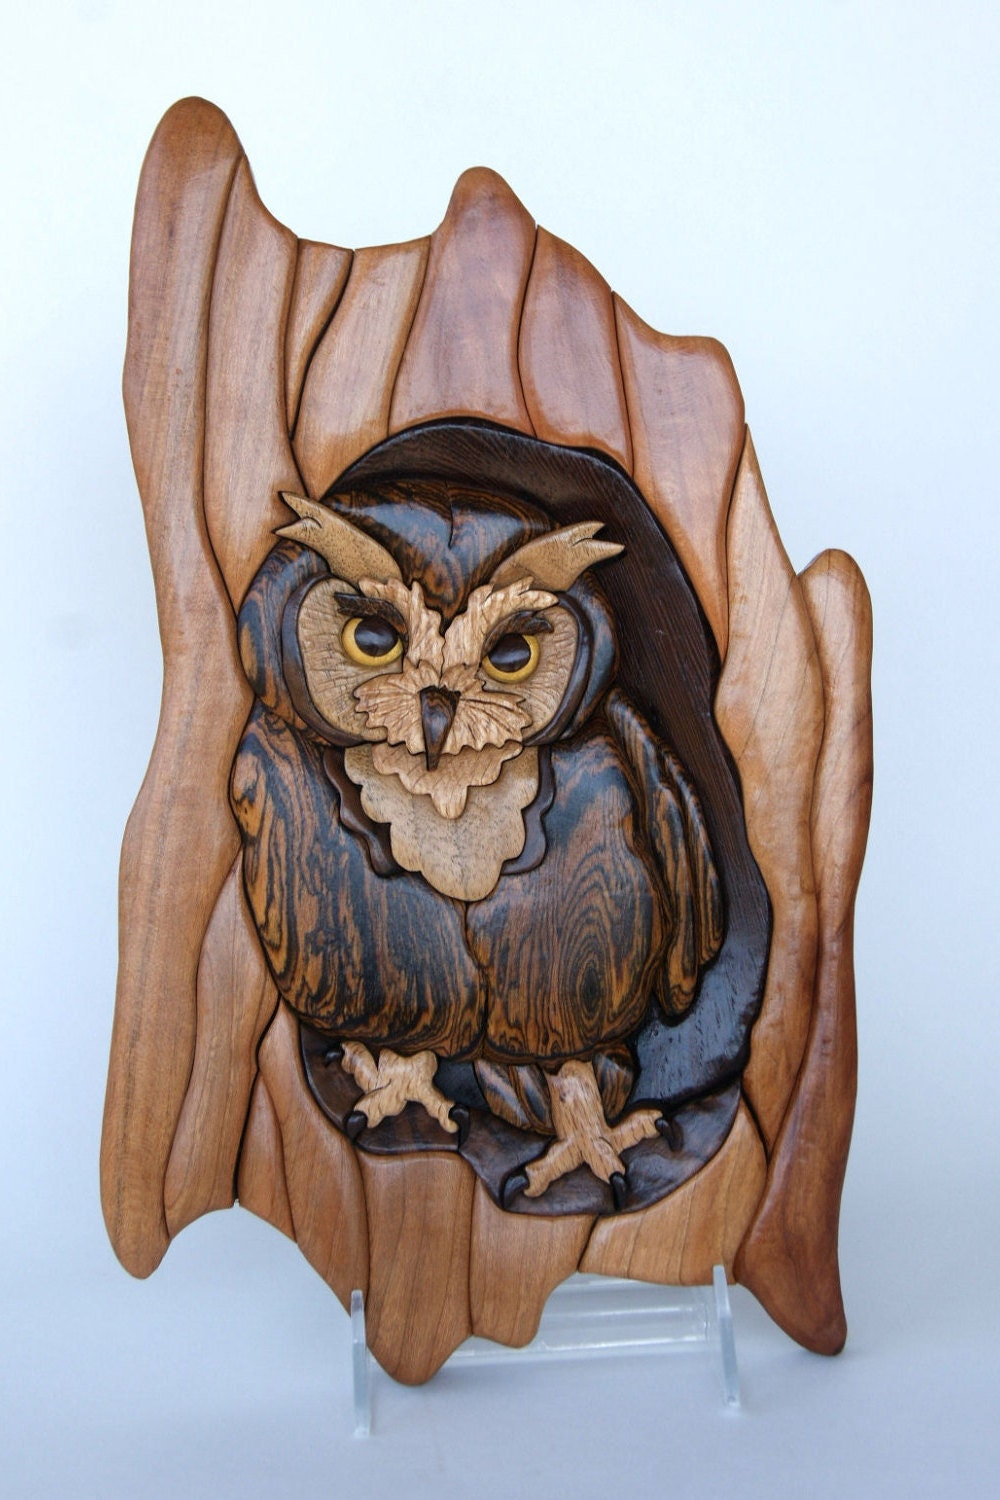 ... Wood Owl Animal Carving Wall Decor Home. 🔎zoom